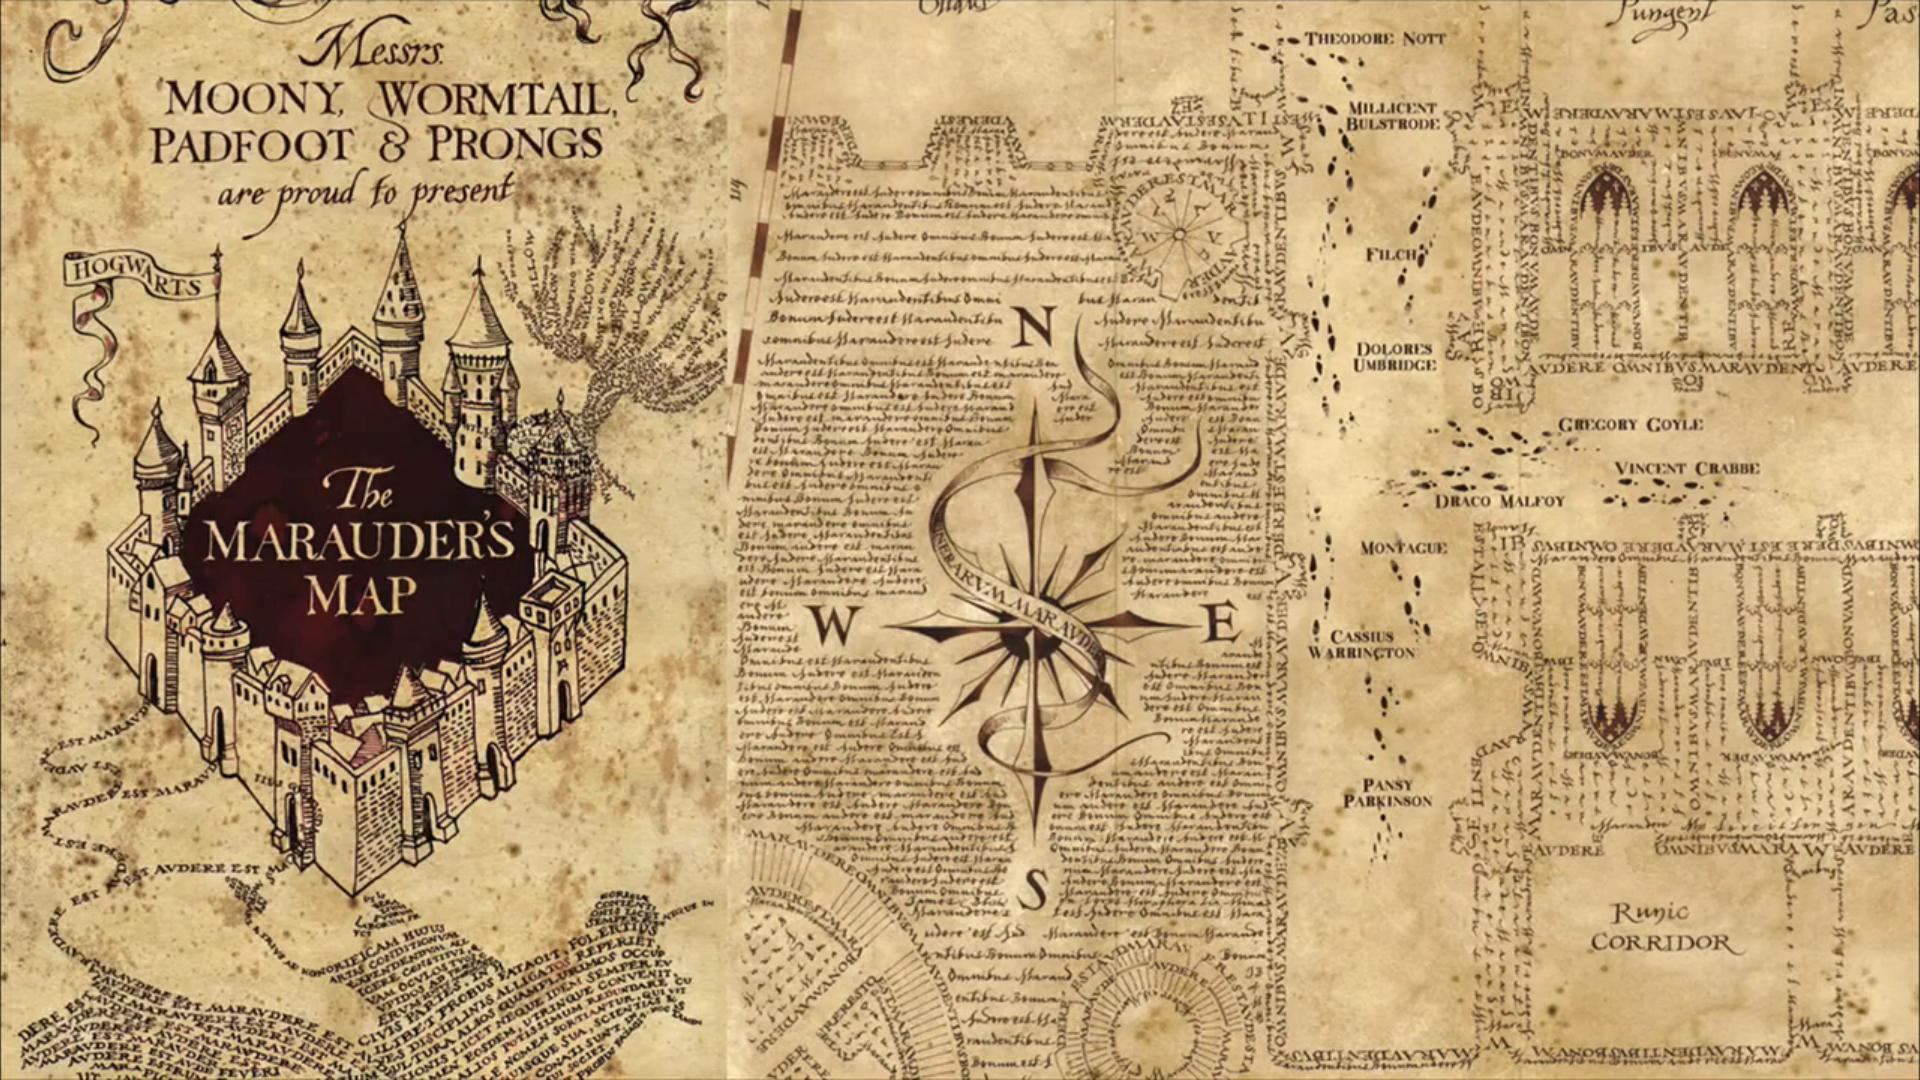 map cassius warrington. image  map cassius warrington  harry potter wiki  fandom